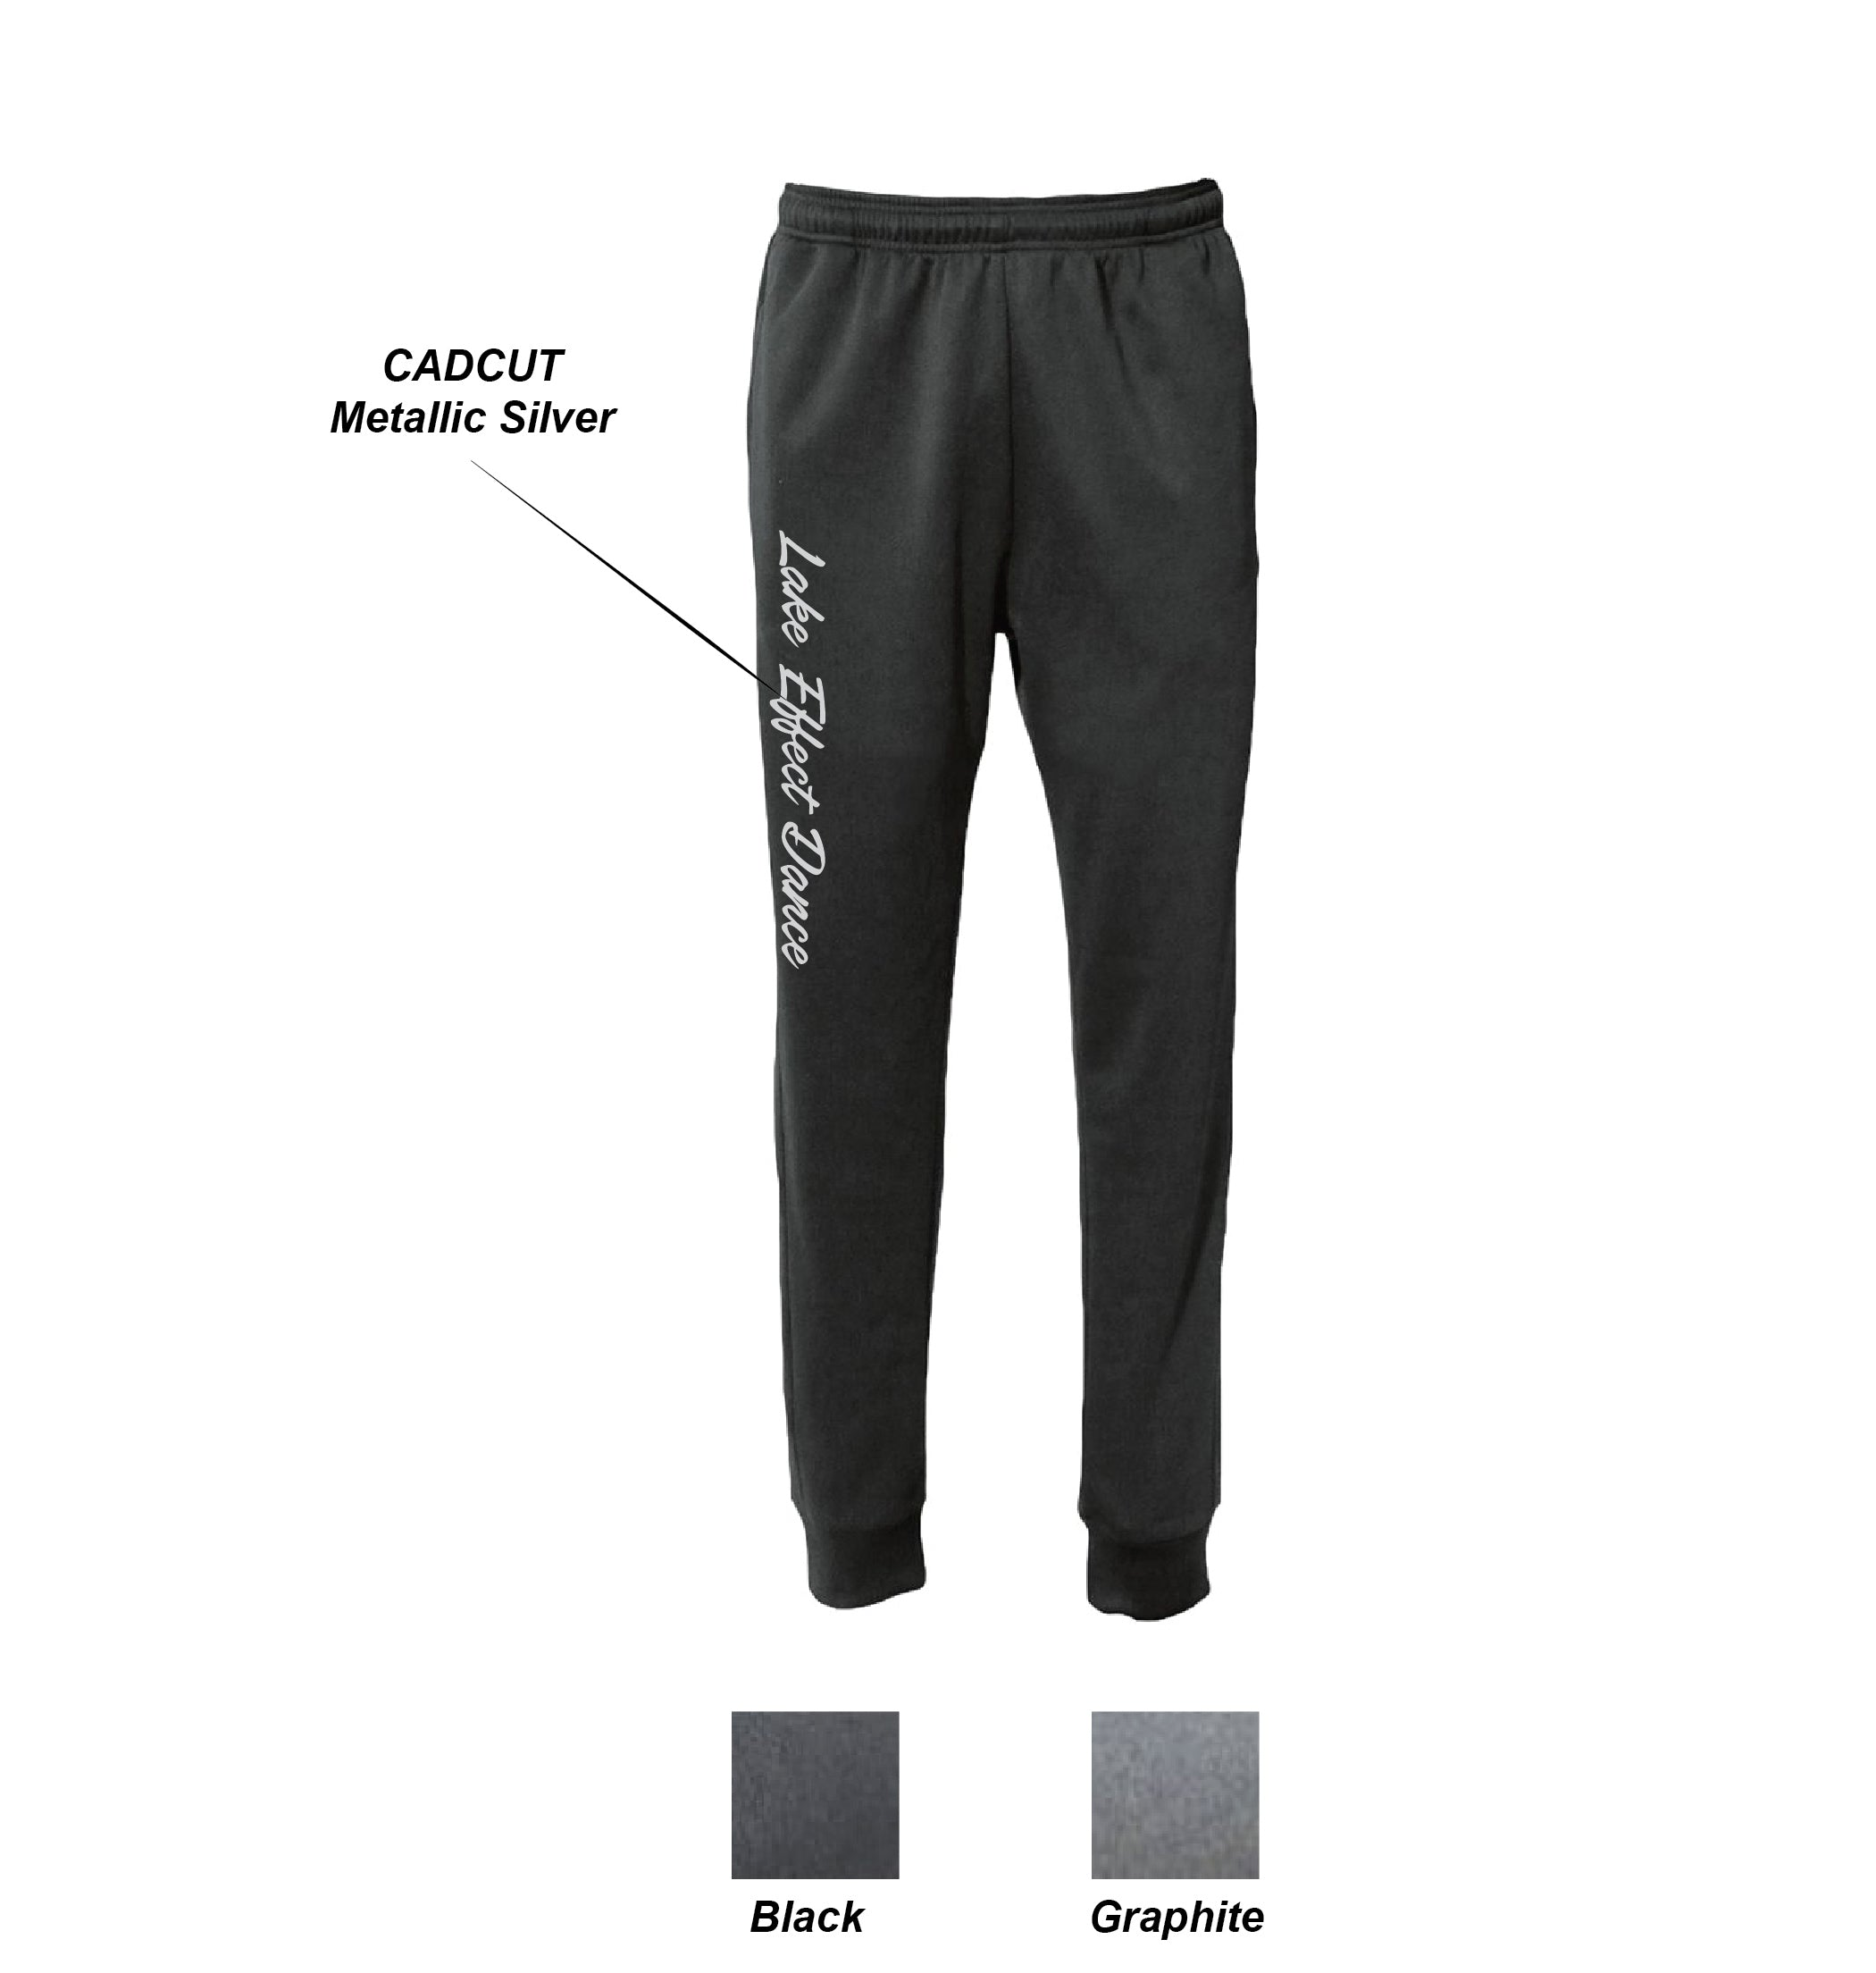 O) ADULT AND YOUTH PERFORMANCE JOGGERS